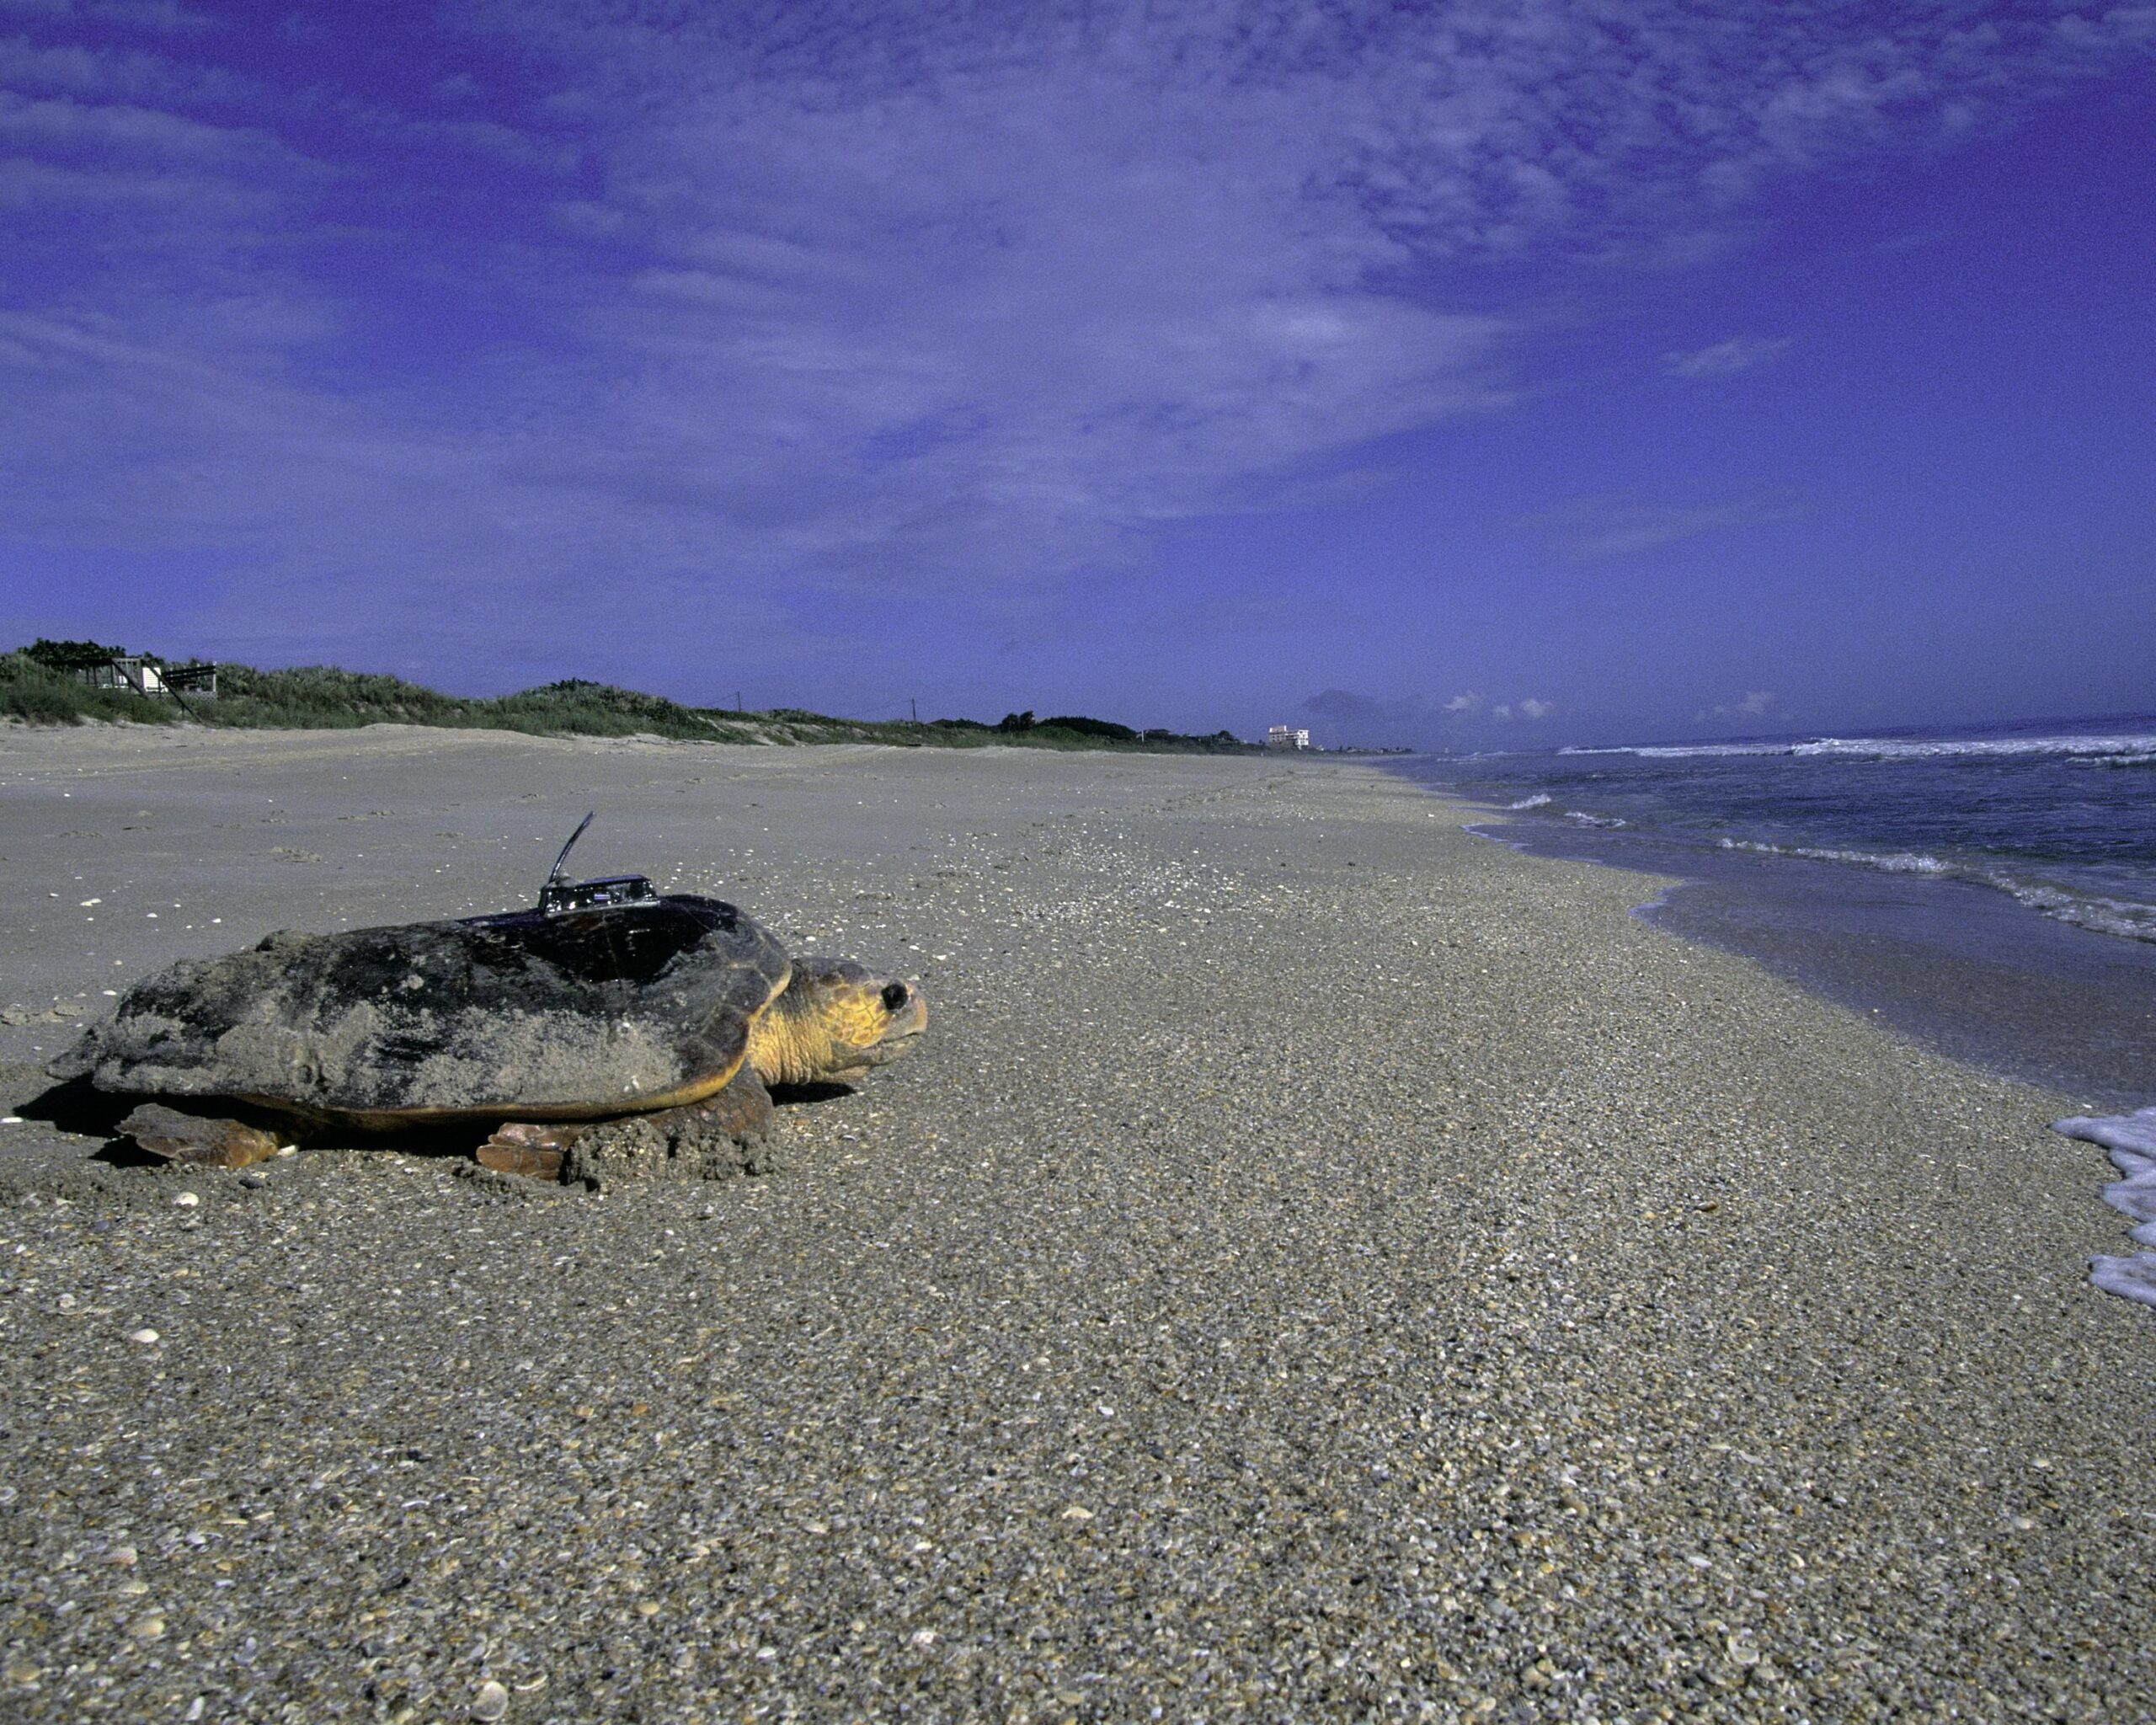 Protections Won for Loggerhead Habitat in Southeast U.S. Waters